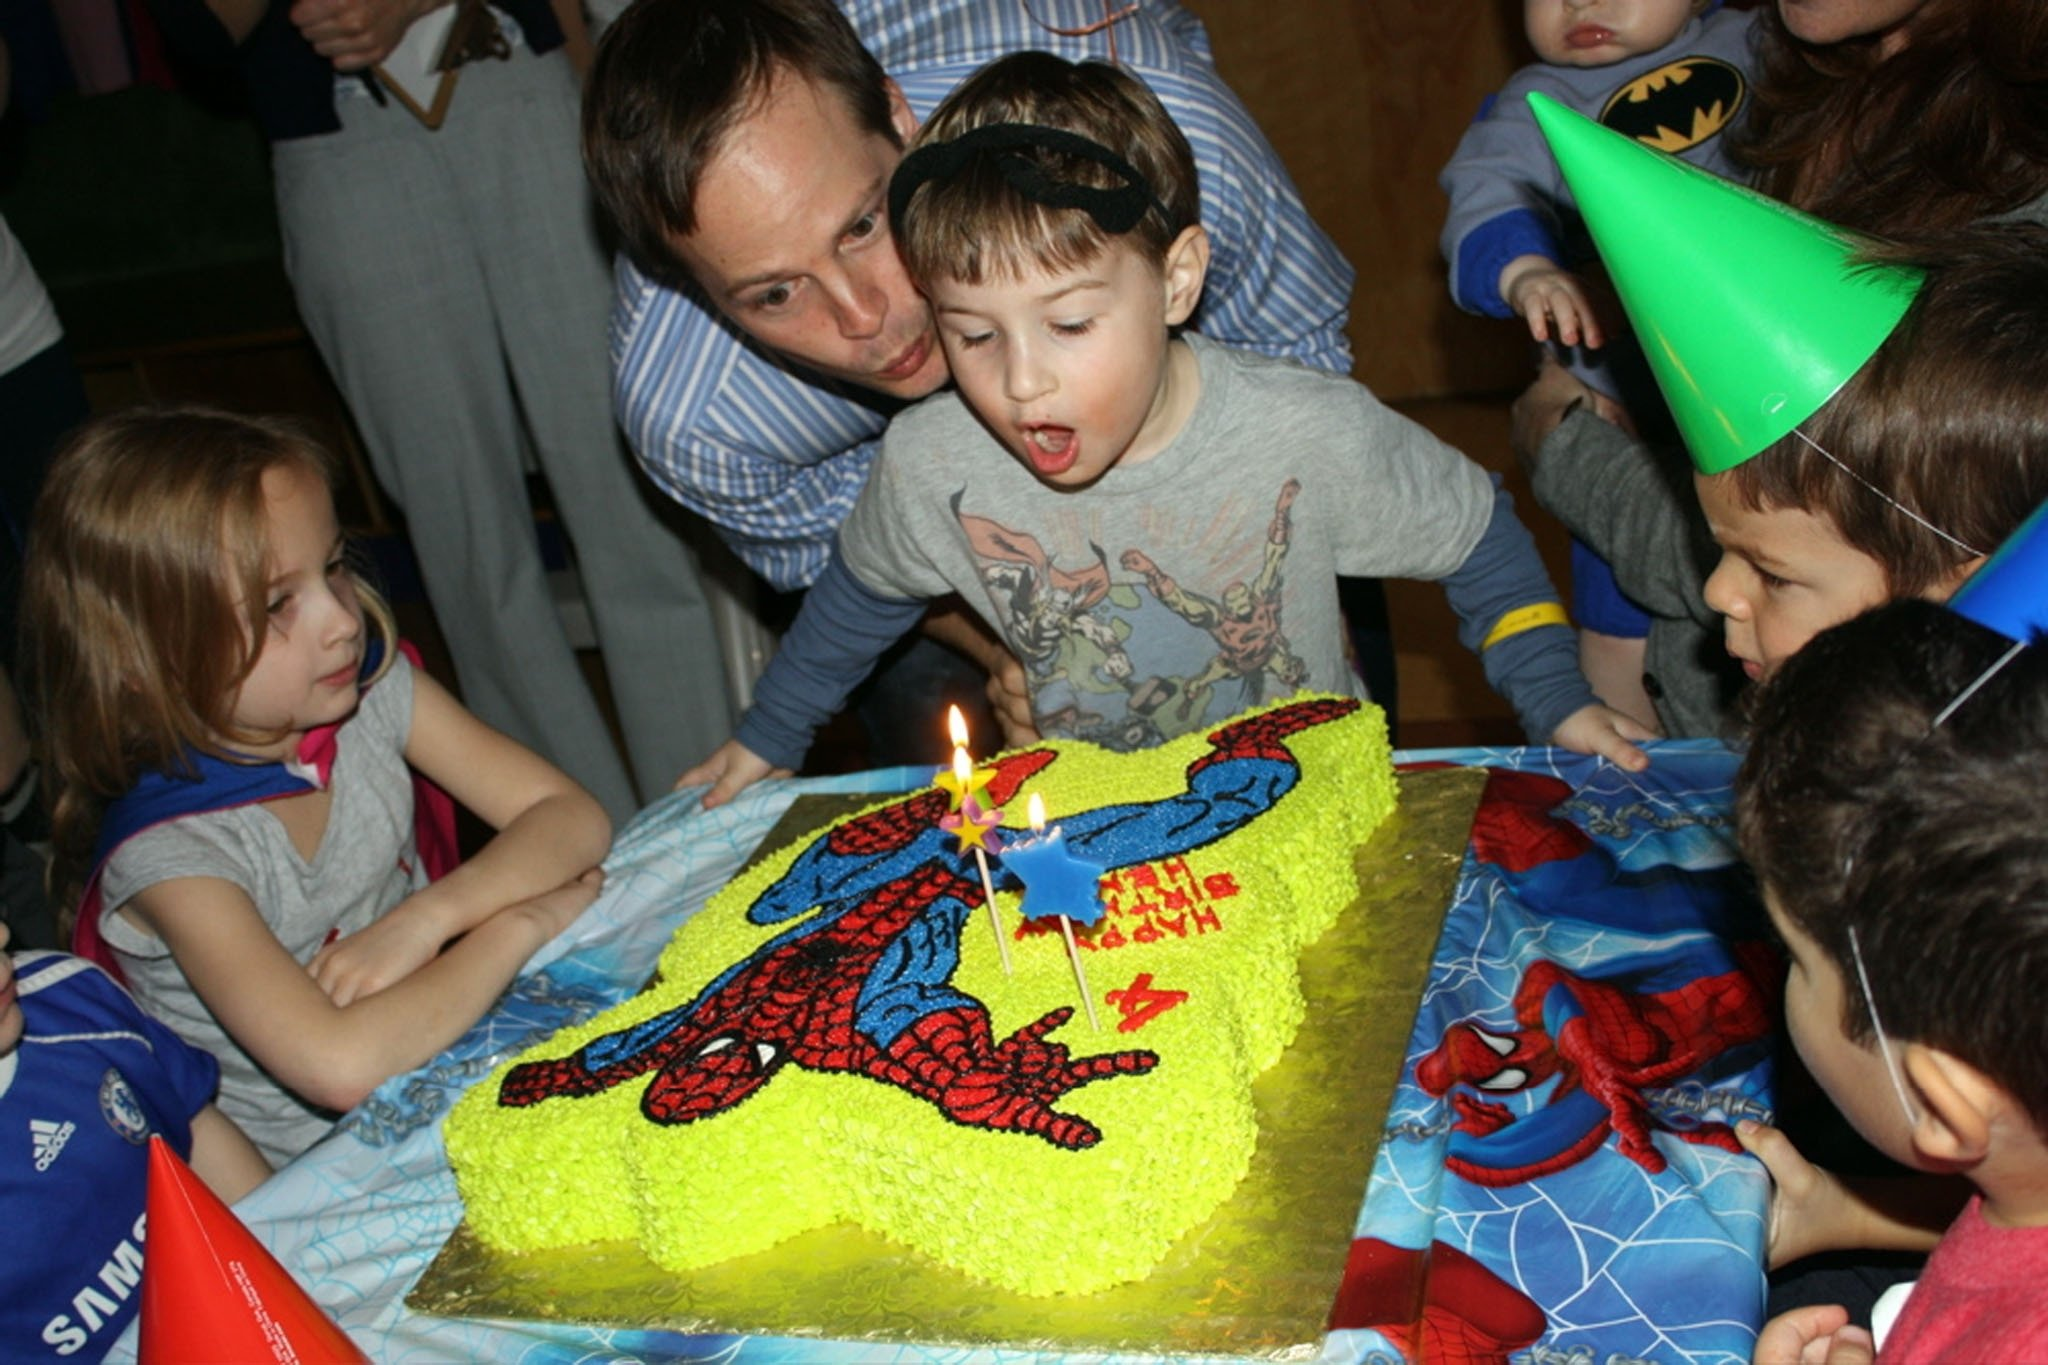 10 Fantastic Kids Birthday Party Entertainment Ideas best kids birthday party places in new york city 4 2021